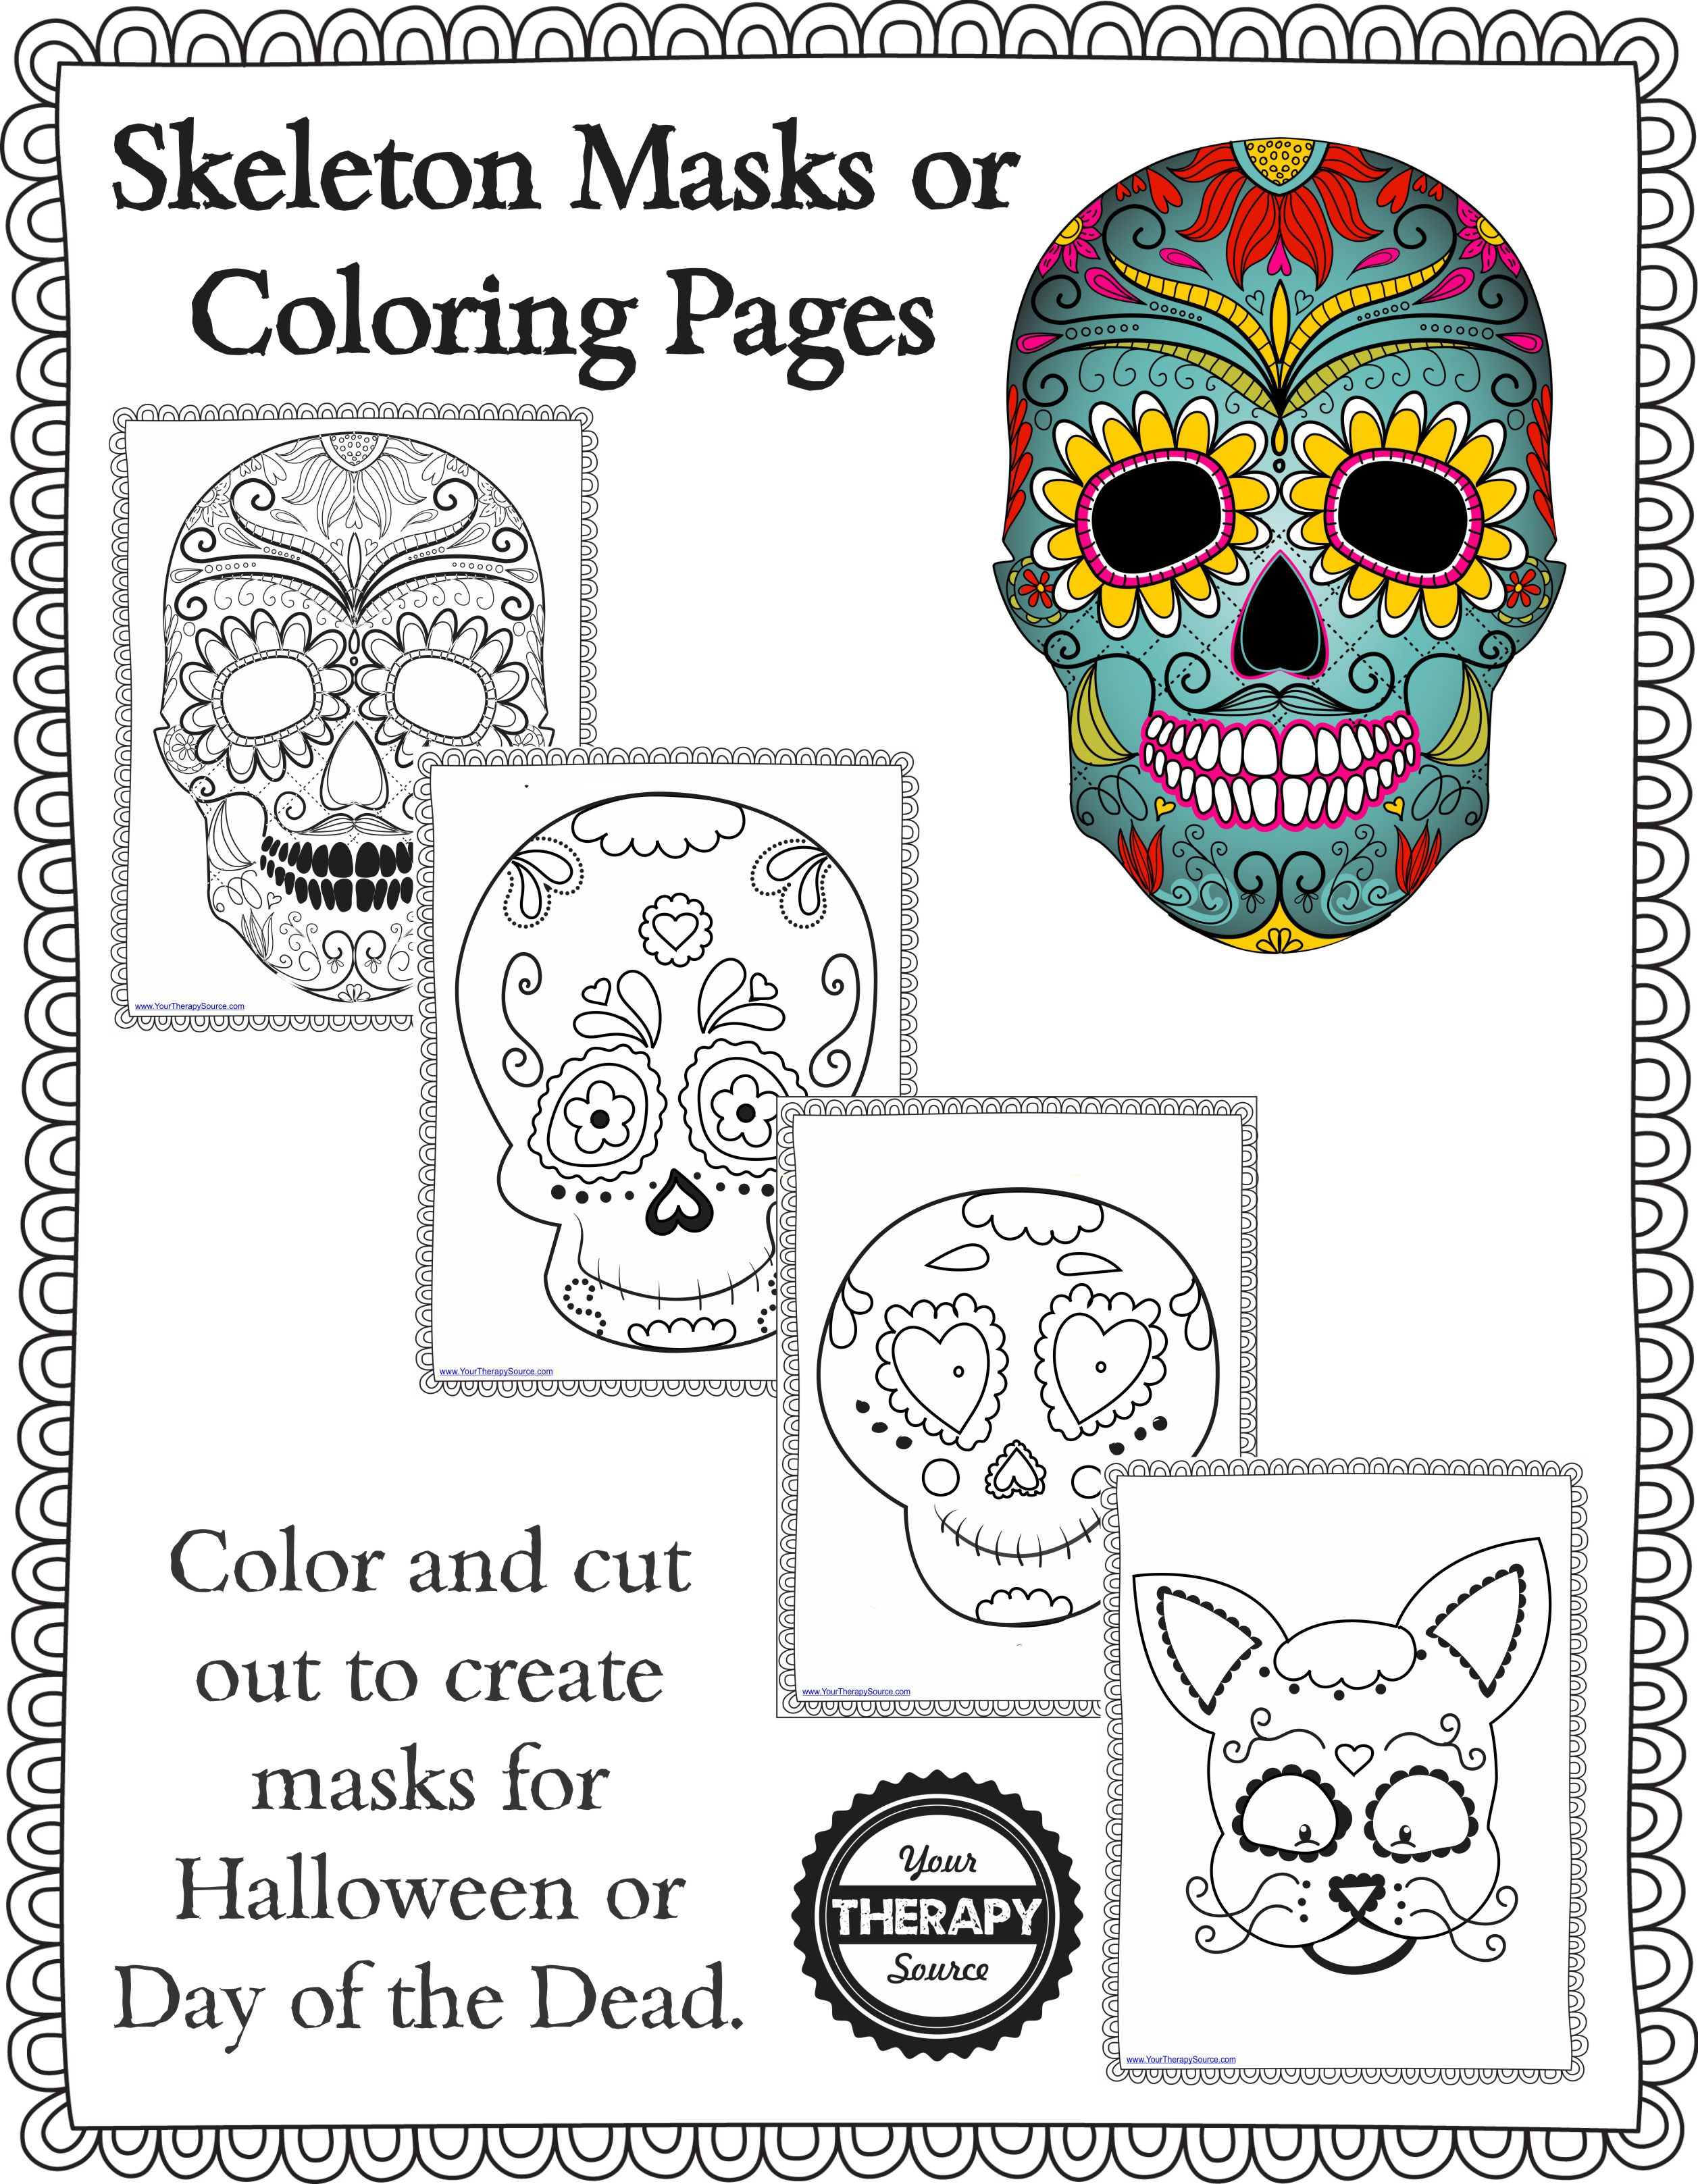 Day of the Dead Masks Sugar Skulls Free Printable | Paper Trail Design | 3234x2514